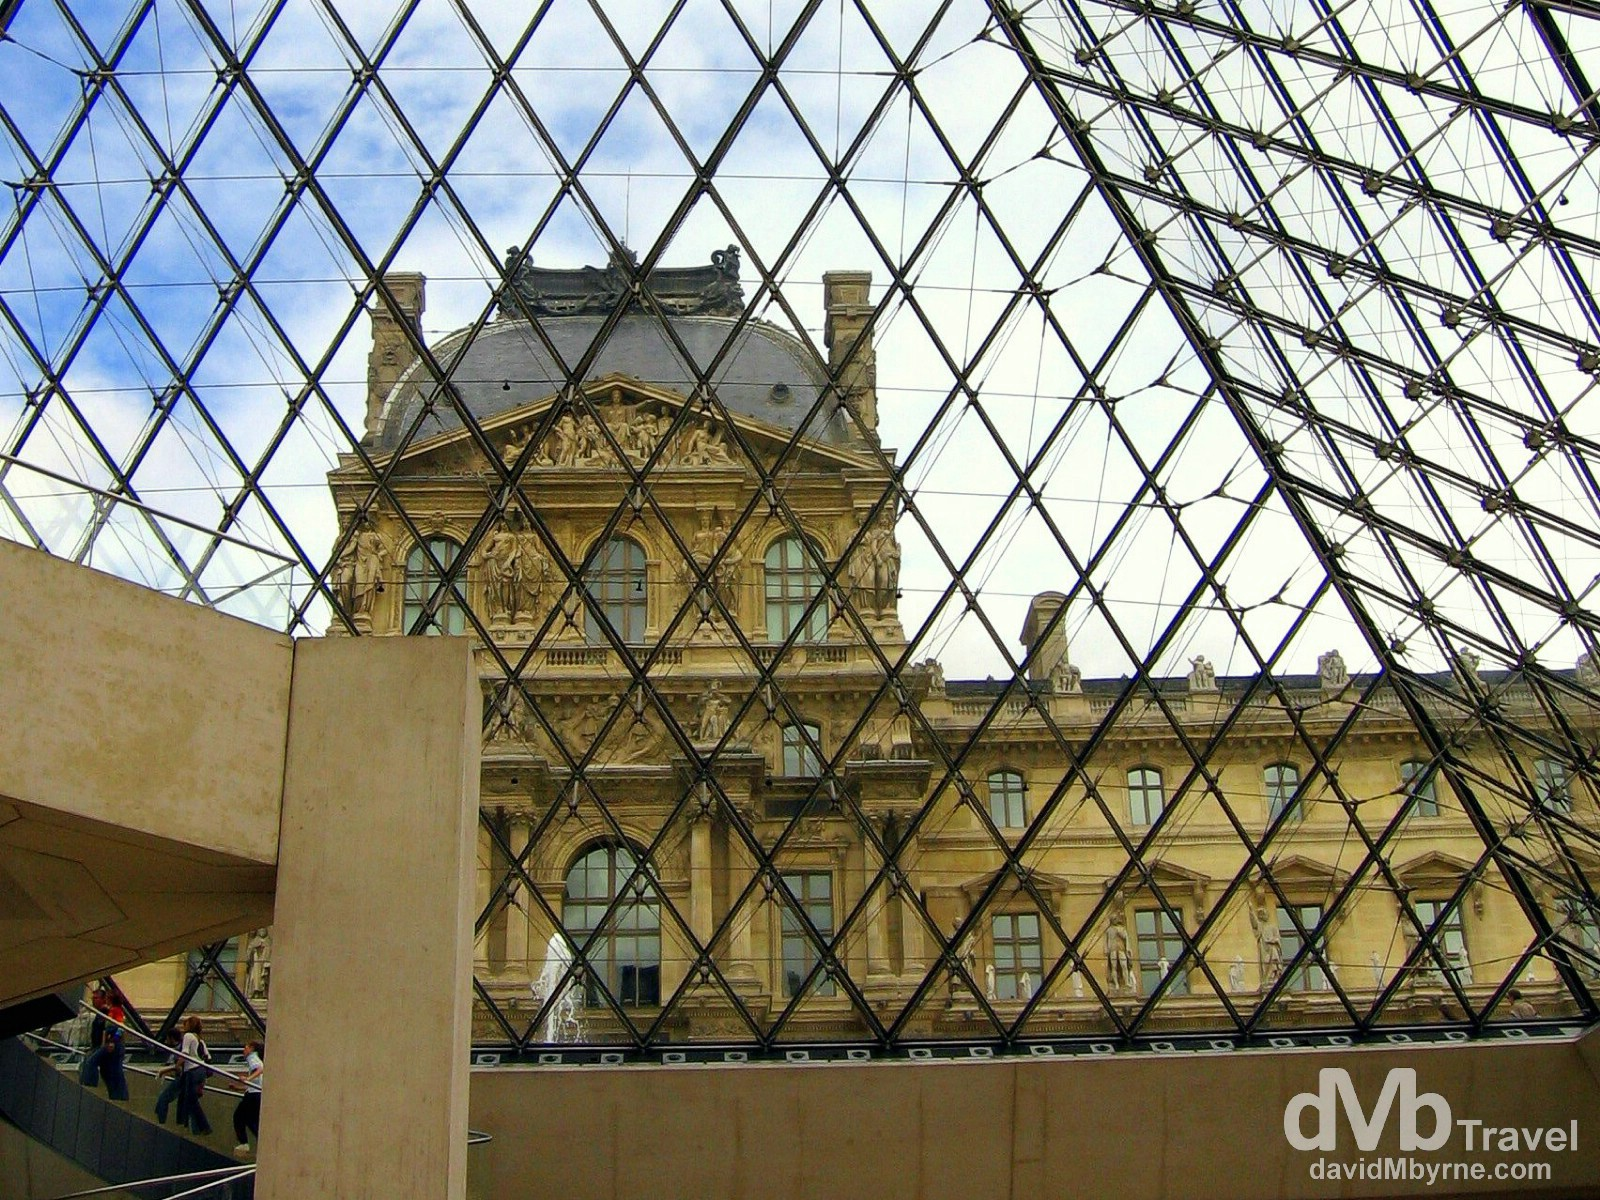 Part of the Richelieu wing as seen through the Pyramid from the Cour Napoléon (Napoleons court), Louvre Museum, Paris, France. August 19th, 2007.